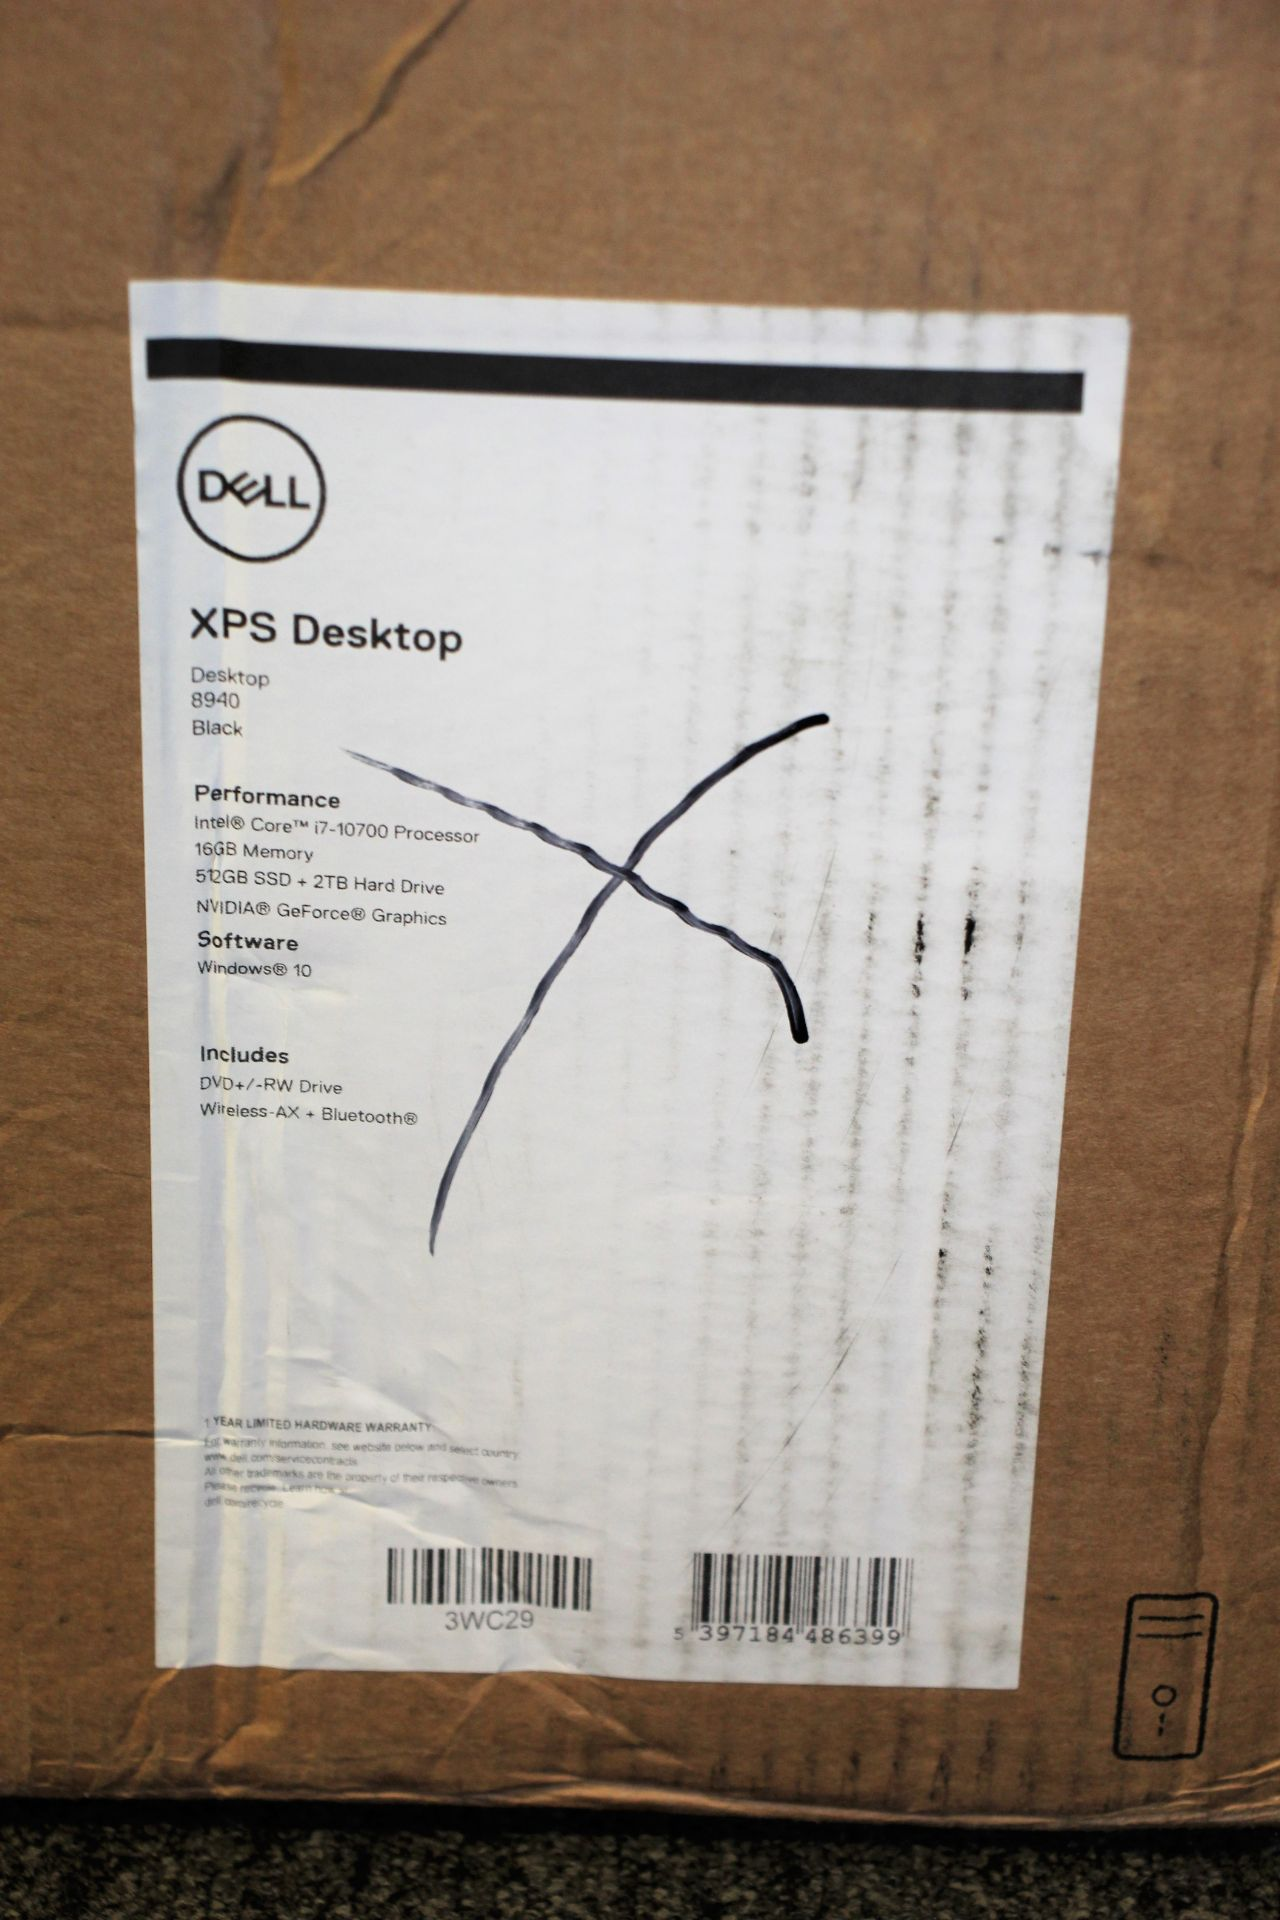 A boxed as new Dell XPS 8940 Tower Computer in Black with Intel Core i7-10700 2.9GHz CPU, 16GB - Image 4 of 14